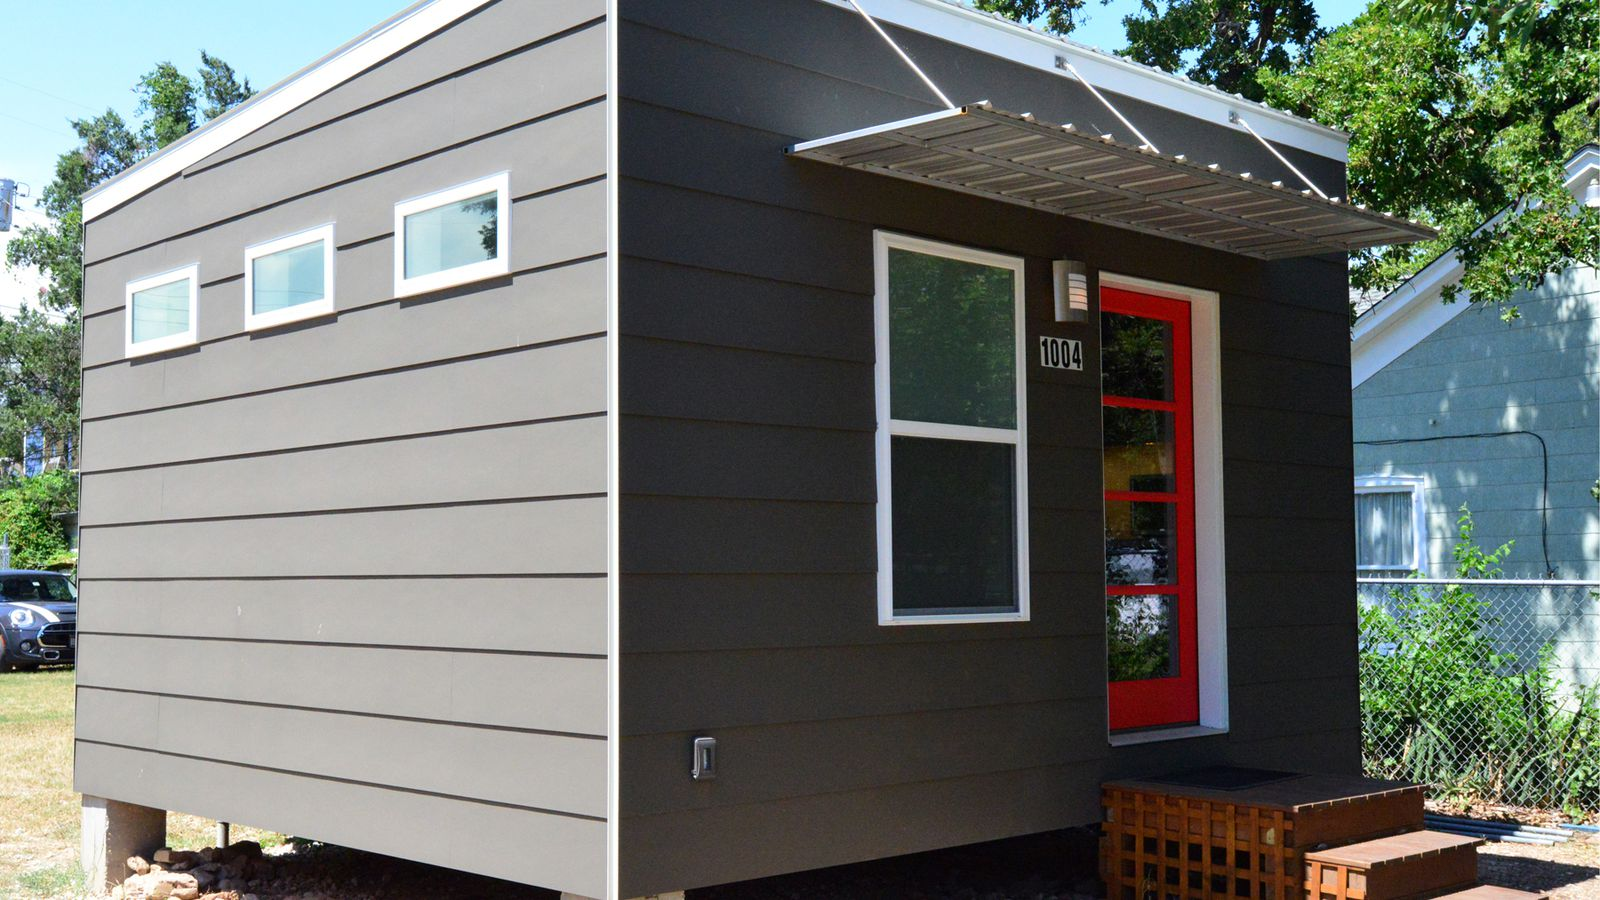 Buy a tiny house in austin for 30k curbed austin for Accessory dwelling unit austin